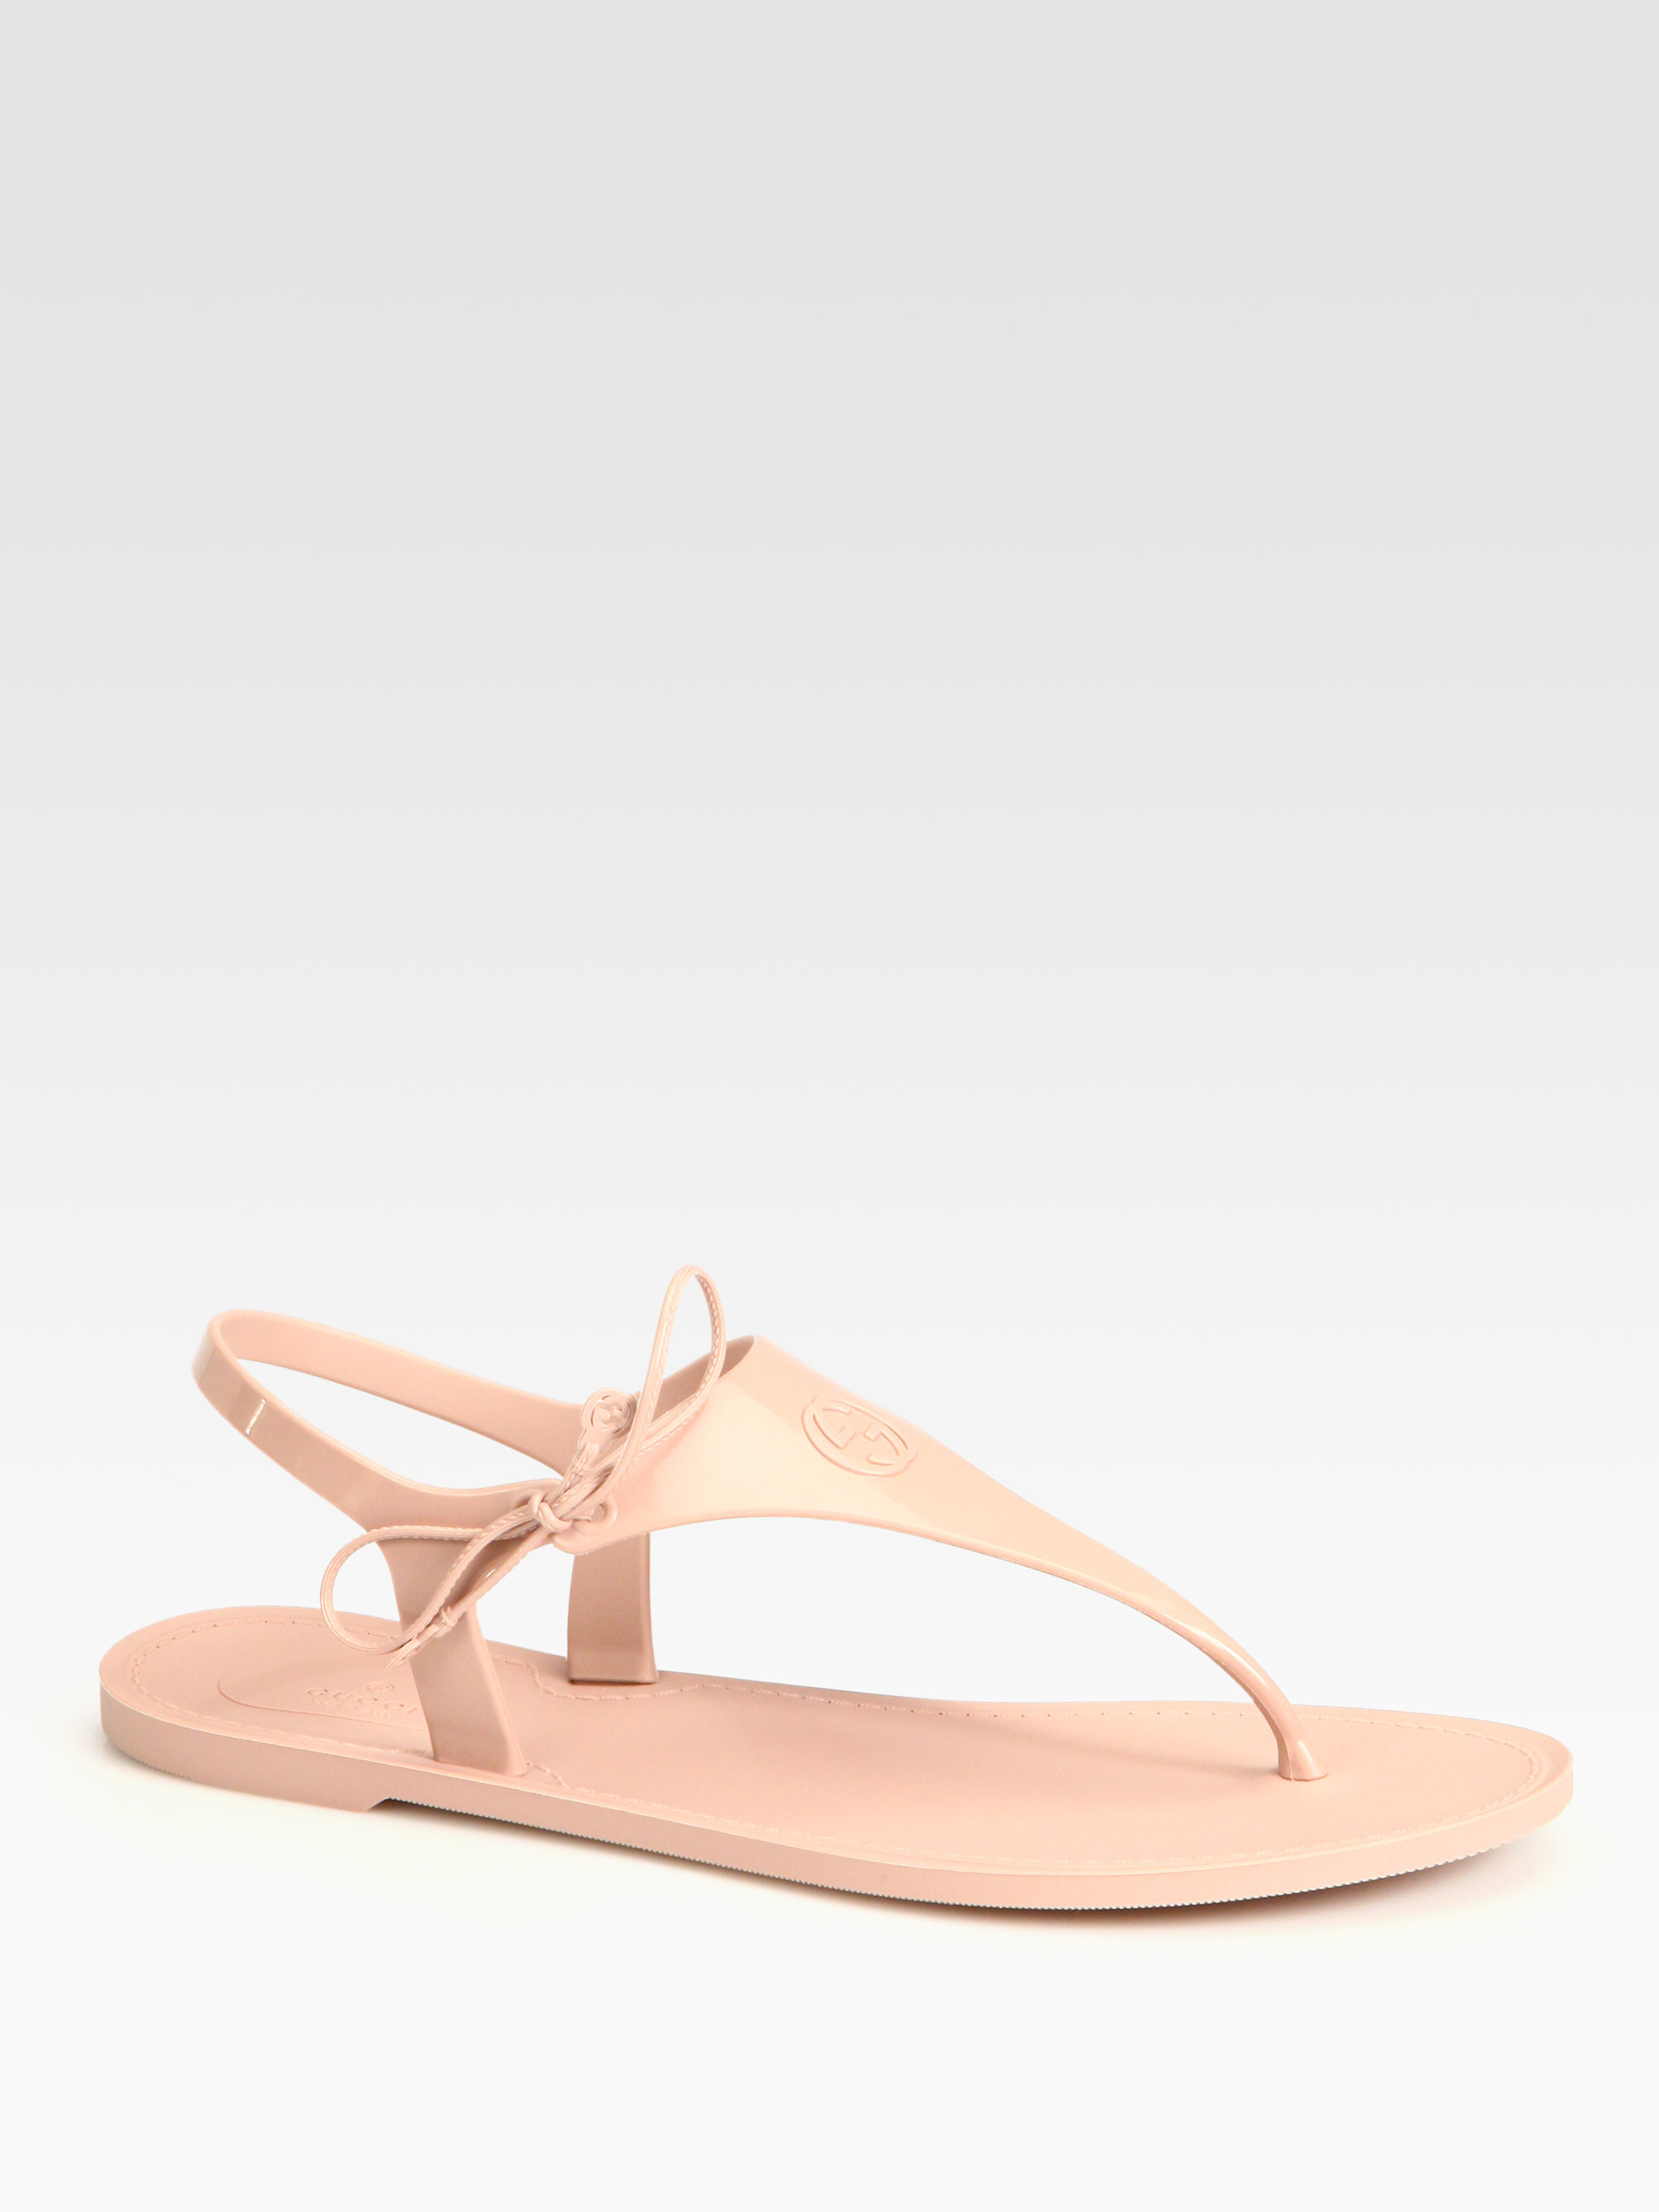 fdf44b6bc Gucci Katina Rubber Thong Sandals in Natural - Lyst